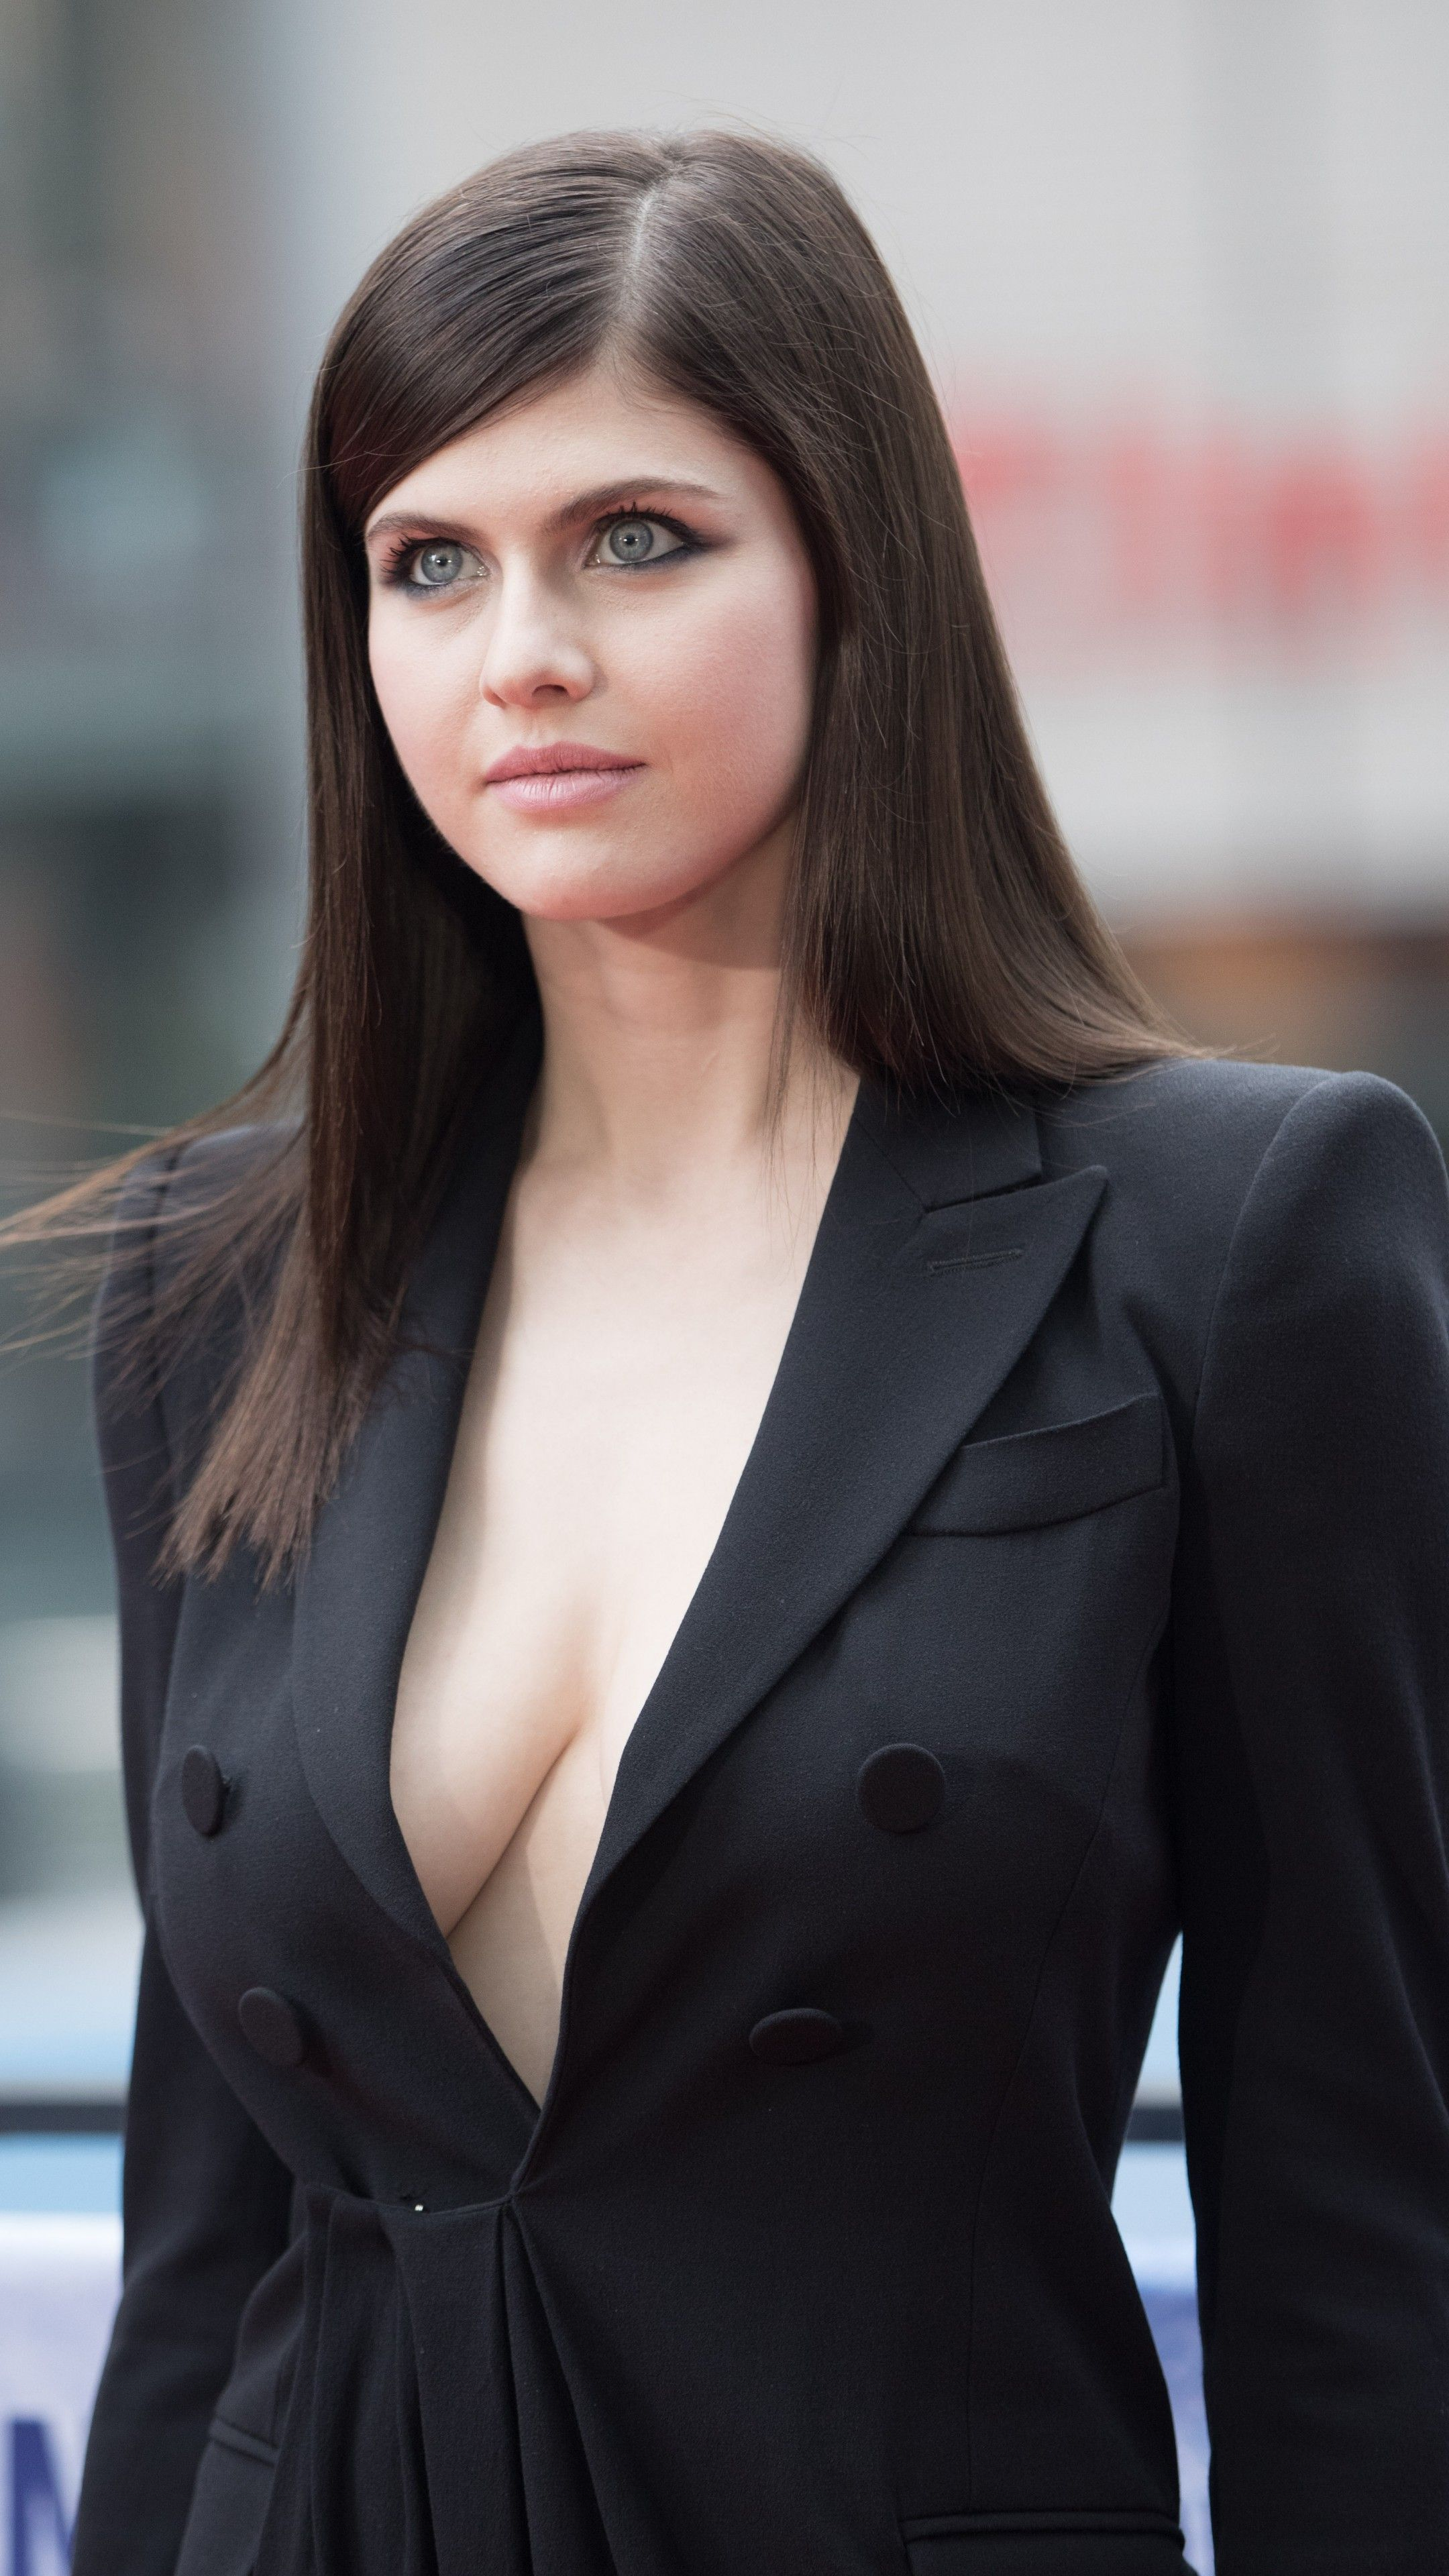 Pin on Most Beautiful Actress in the World